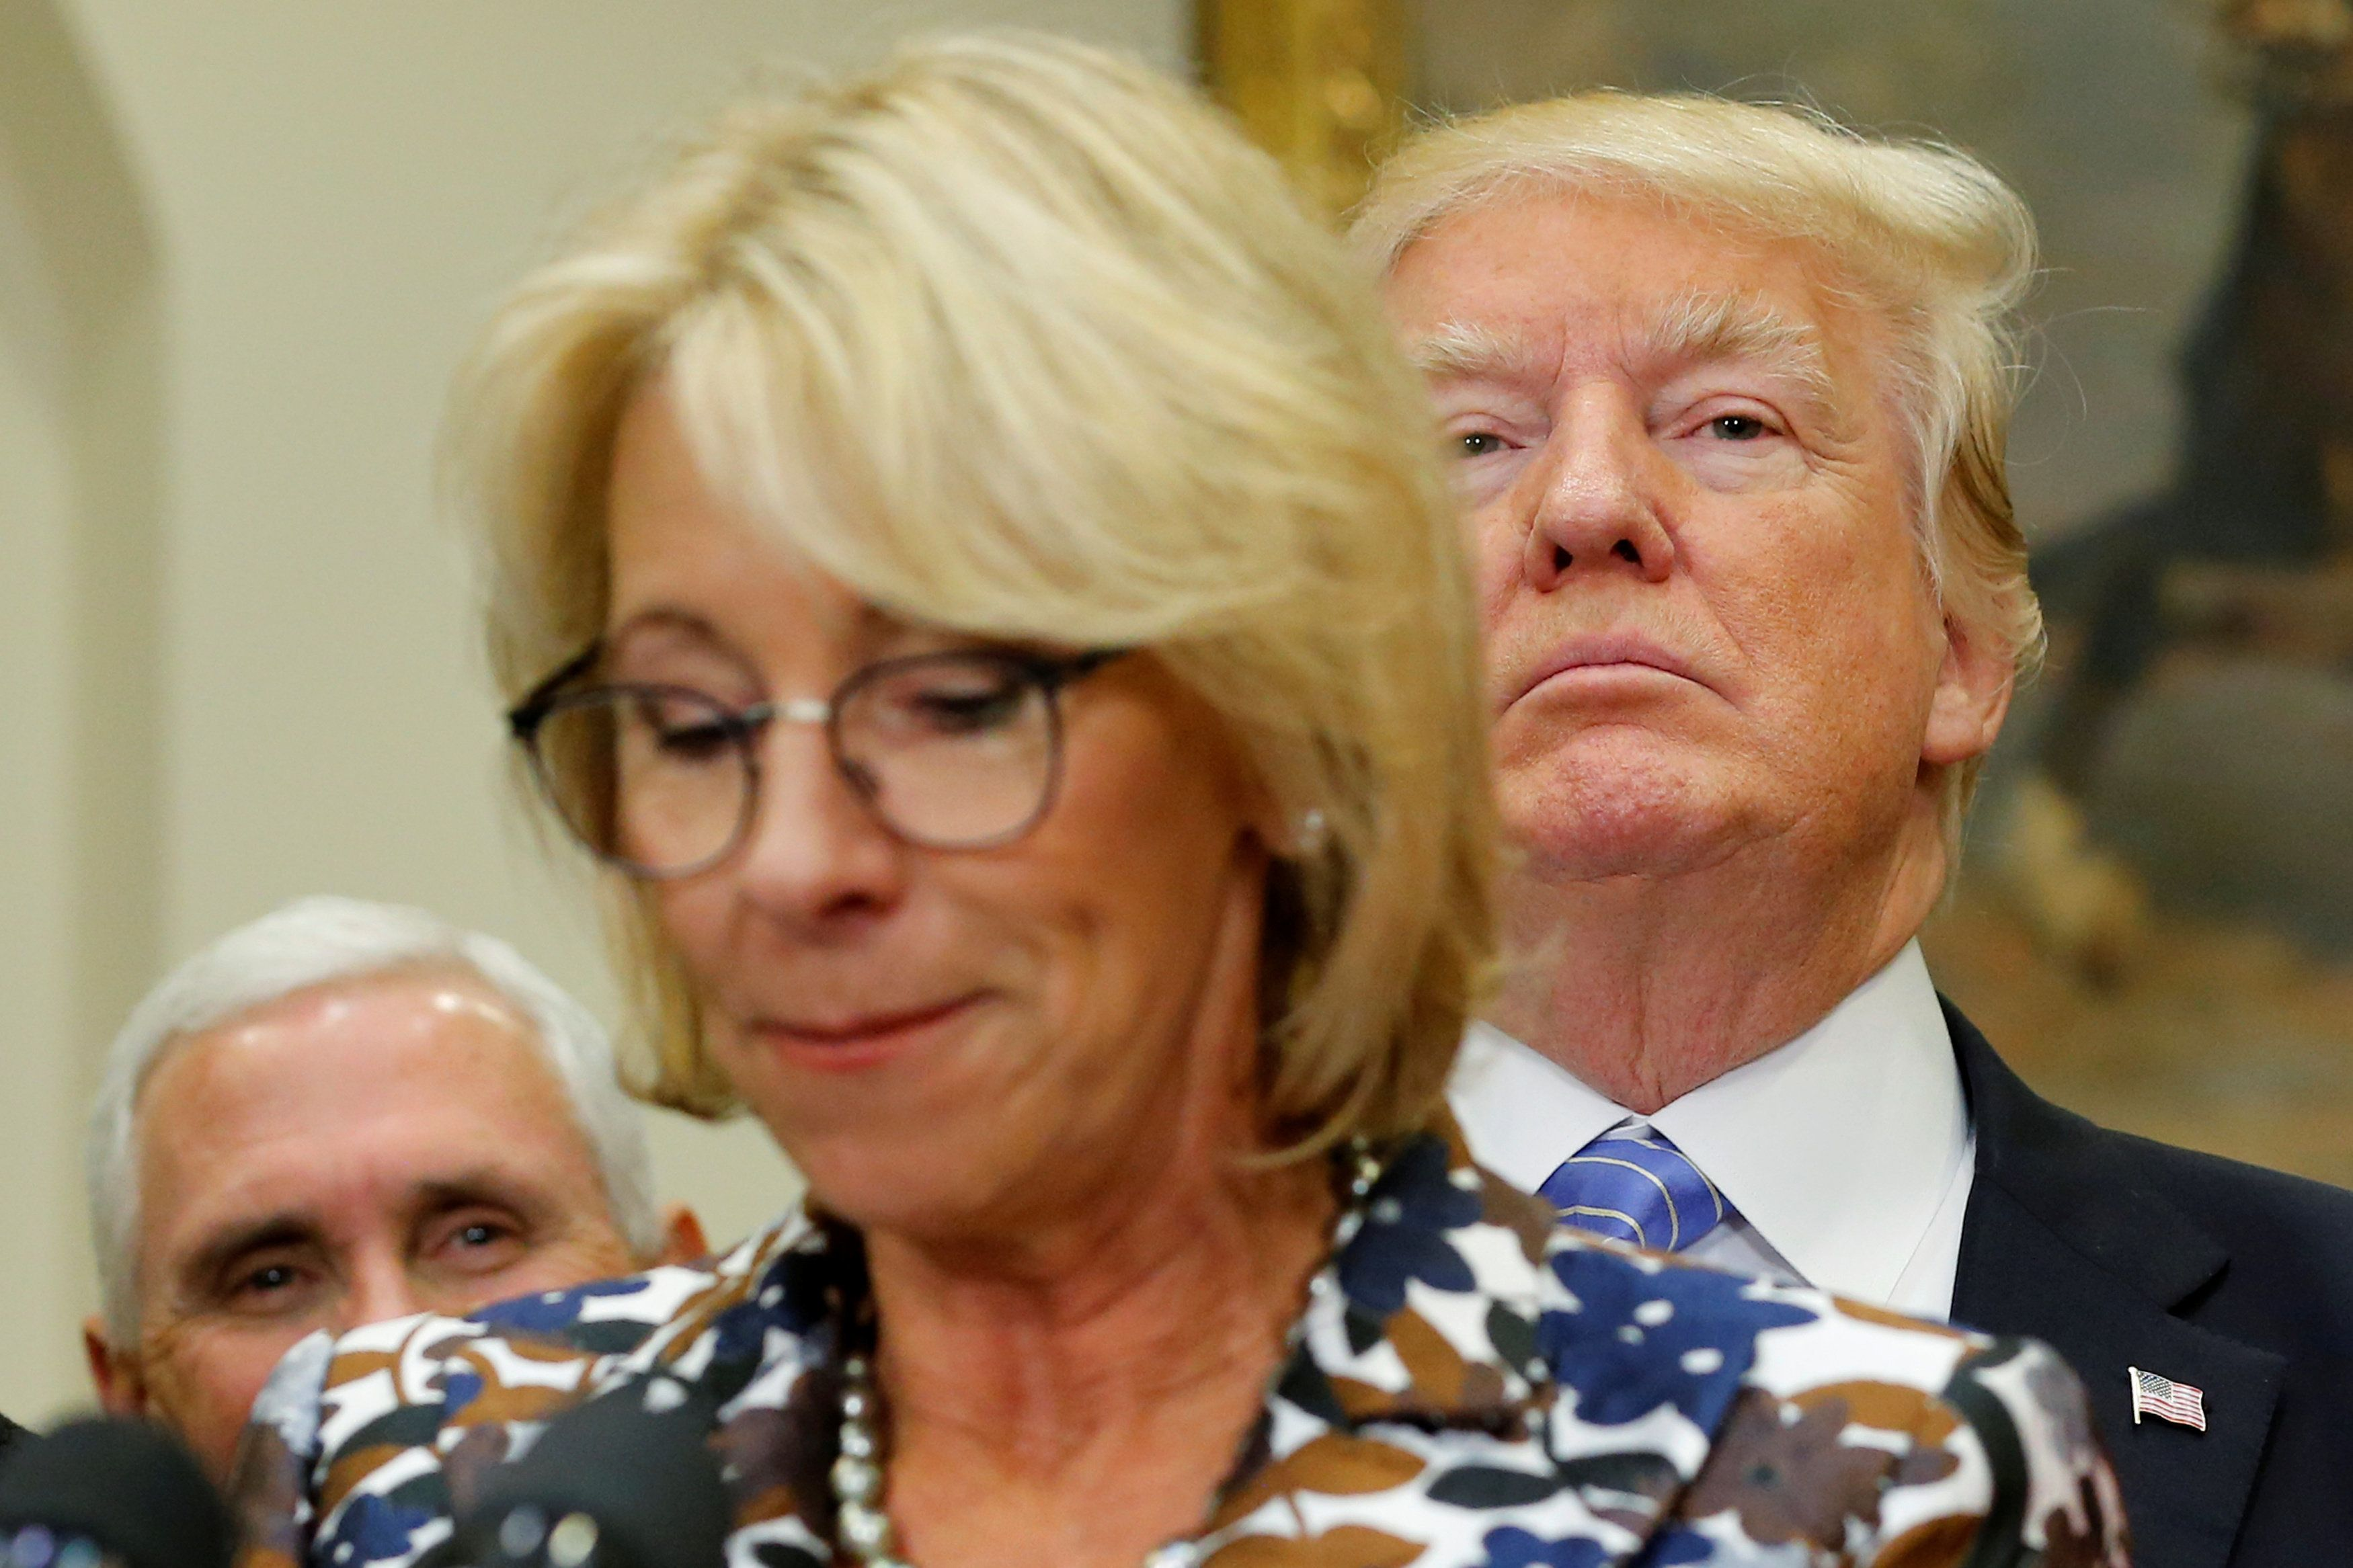 Racial harassment complaints to the U.S. Department of Education's Office for Civil Rights increased nearly 25 percent betwee